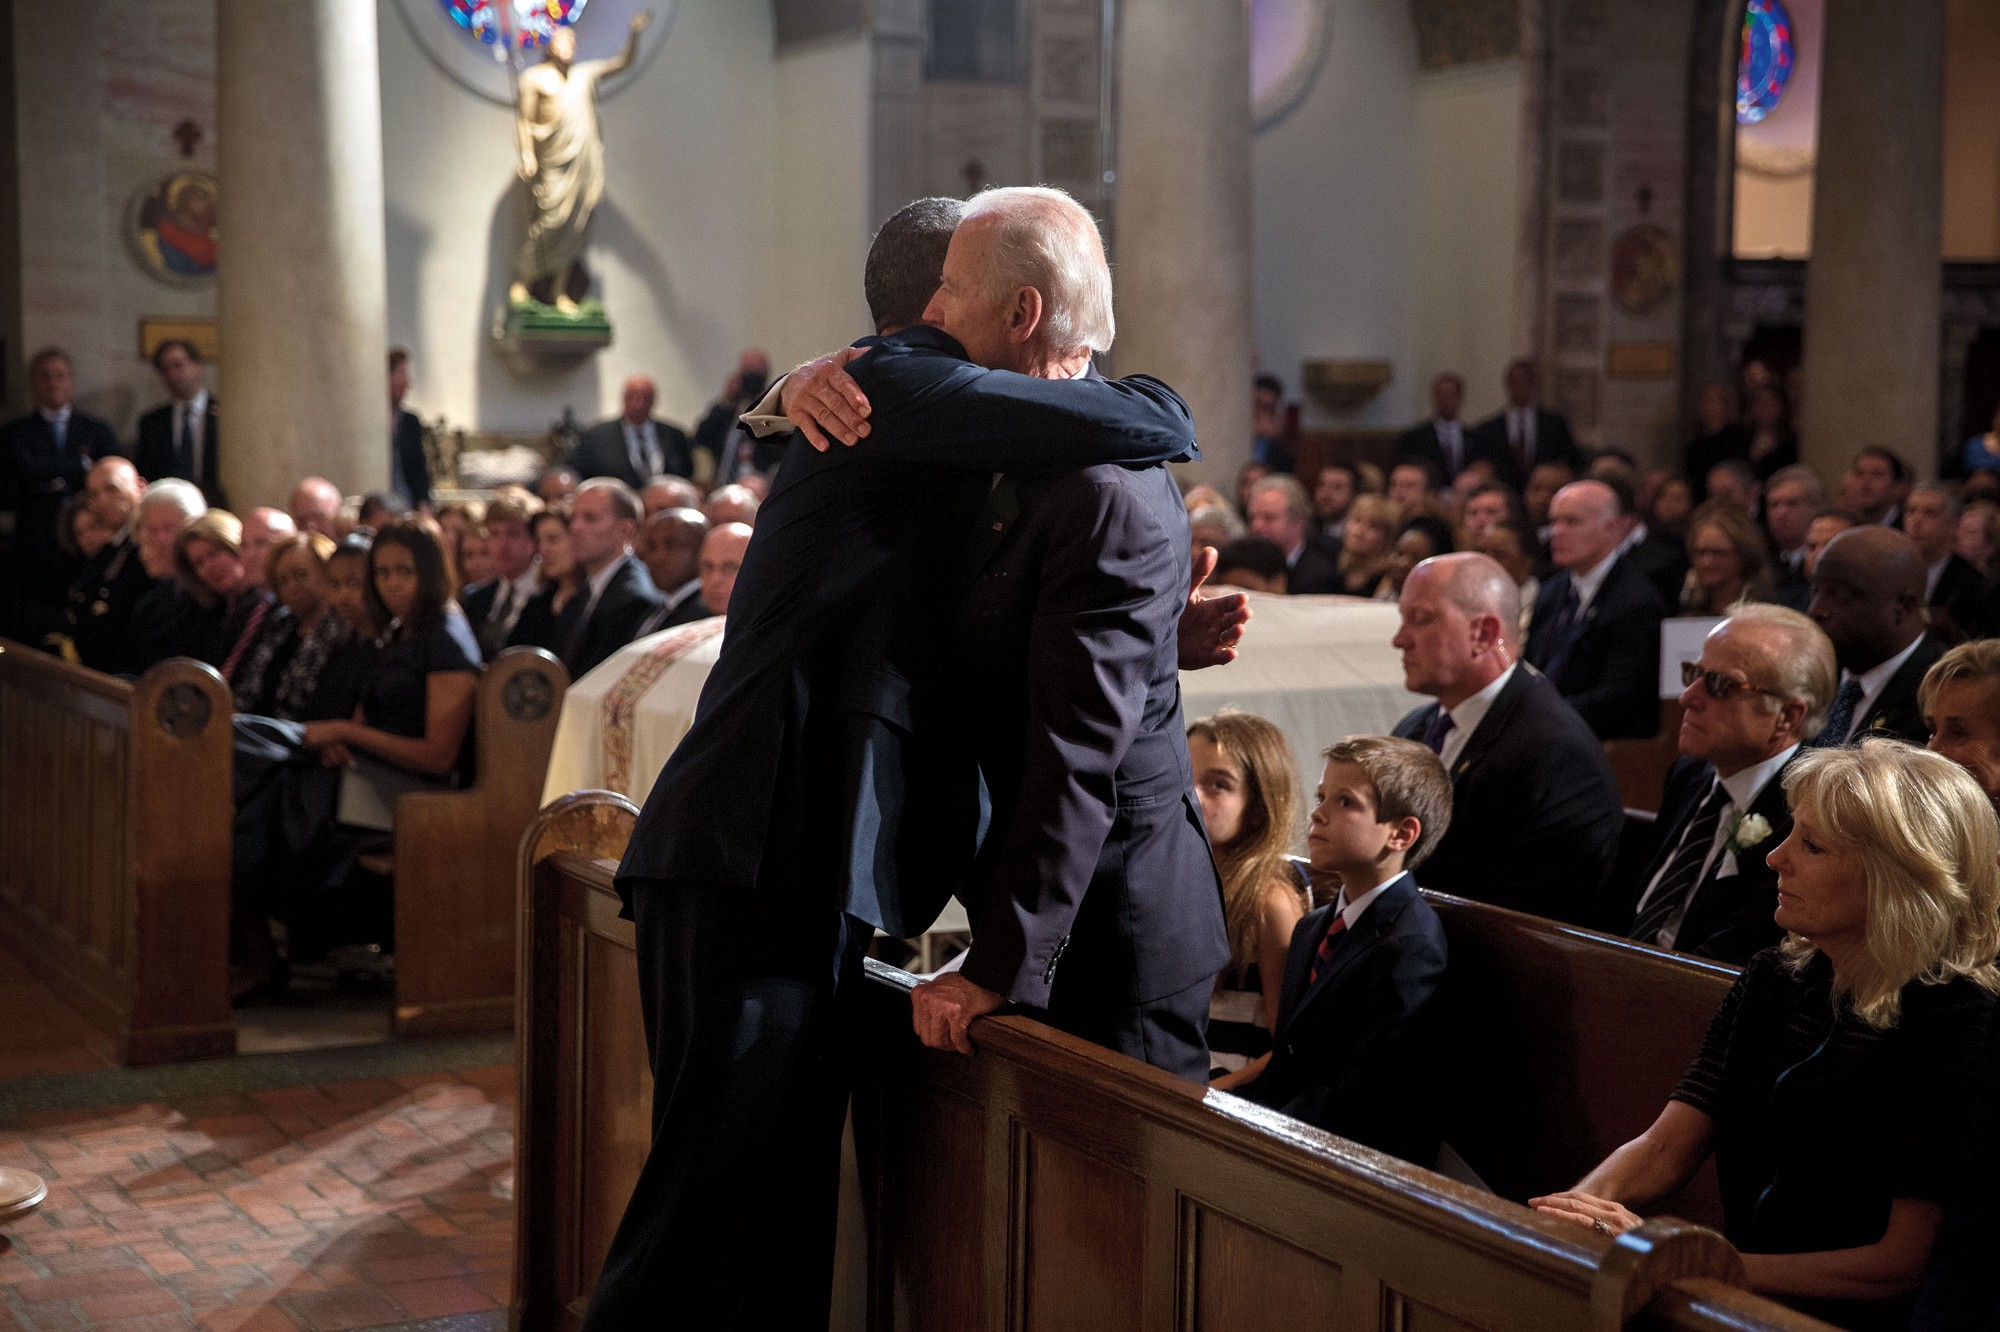 "June 6, 2015 ""The President hugs Vice President Joe Biden after delivering a eulogy during the funeral mass for Beau Biden at St. Anthony of Padua Catholic Church in Wilmington, Del."" (Official White House Photo by Pete Souza)"